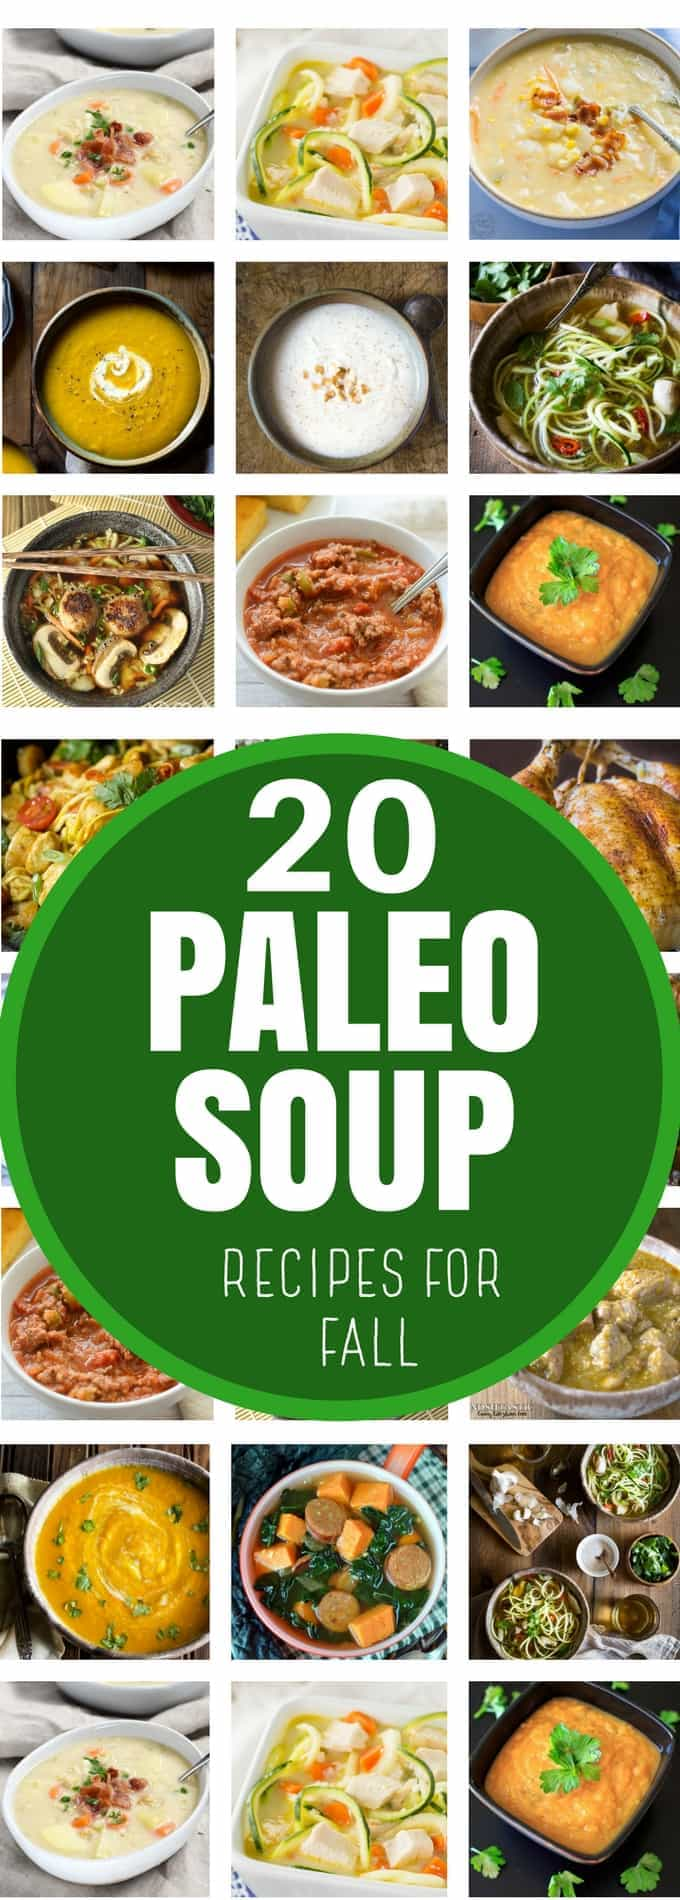 20 EPIC Paleo SOUP recipes for FALL you won't want to miss! Gluten Free